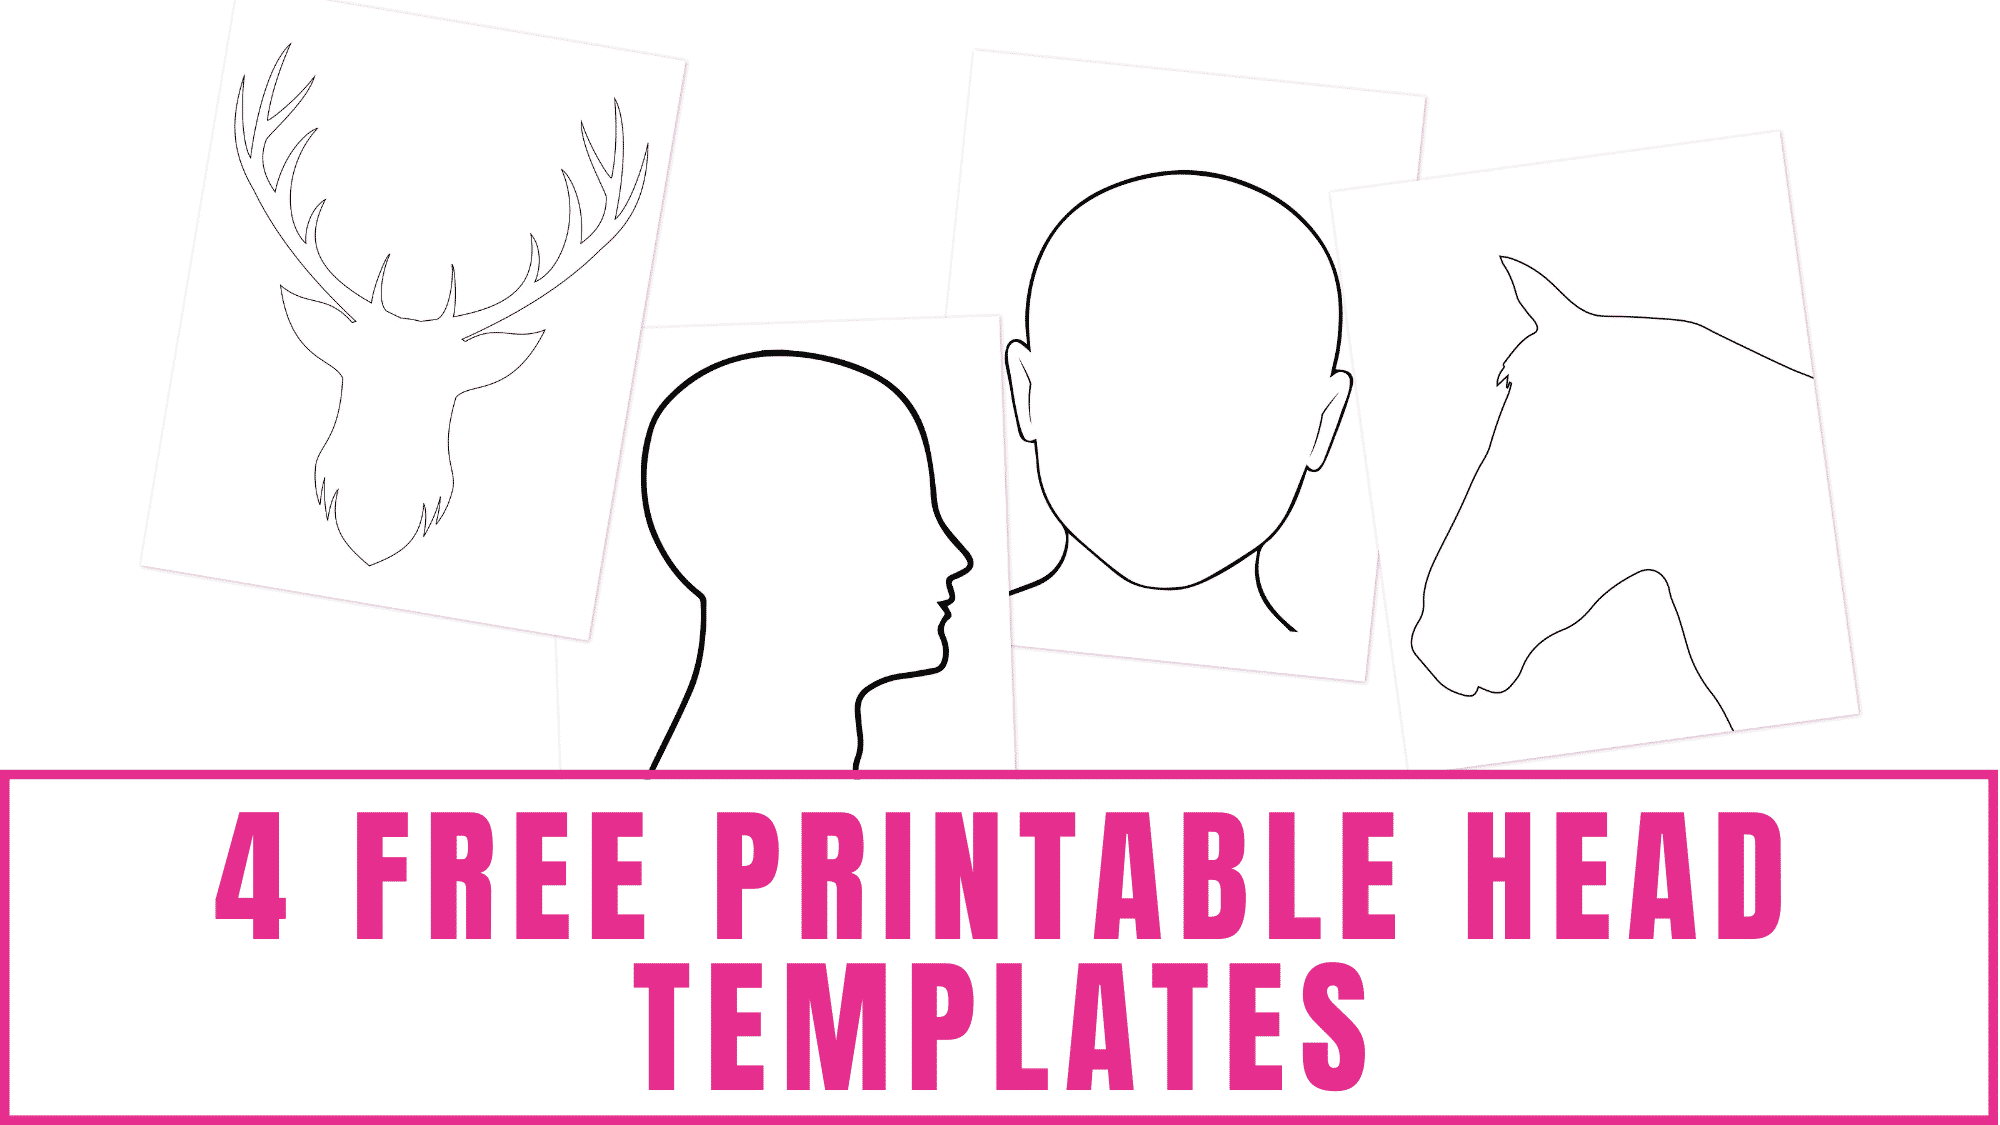 Do you or your kids like to draw? Use these free printable head templates to learn how to draw a human head, horse's head, and a deer's head.